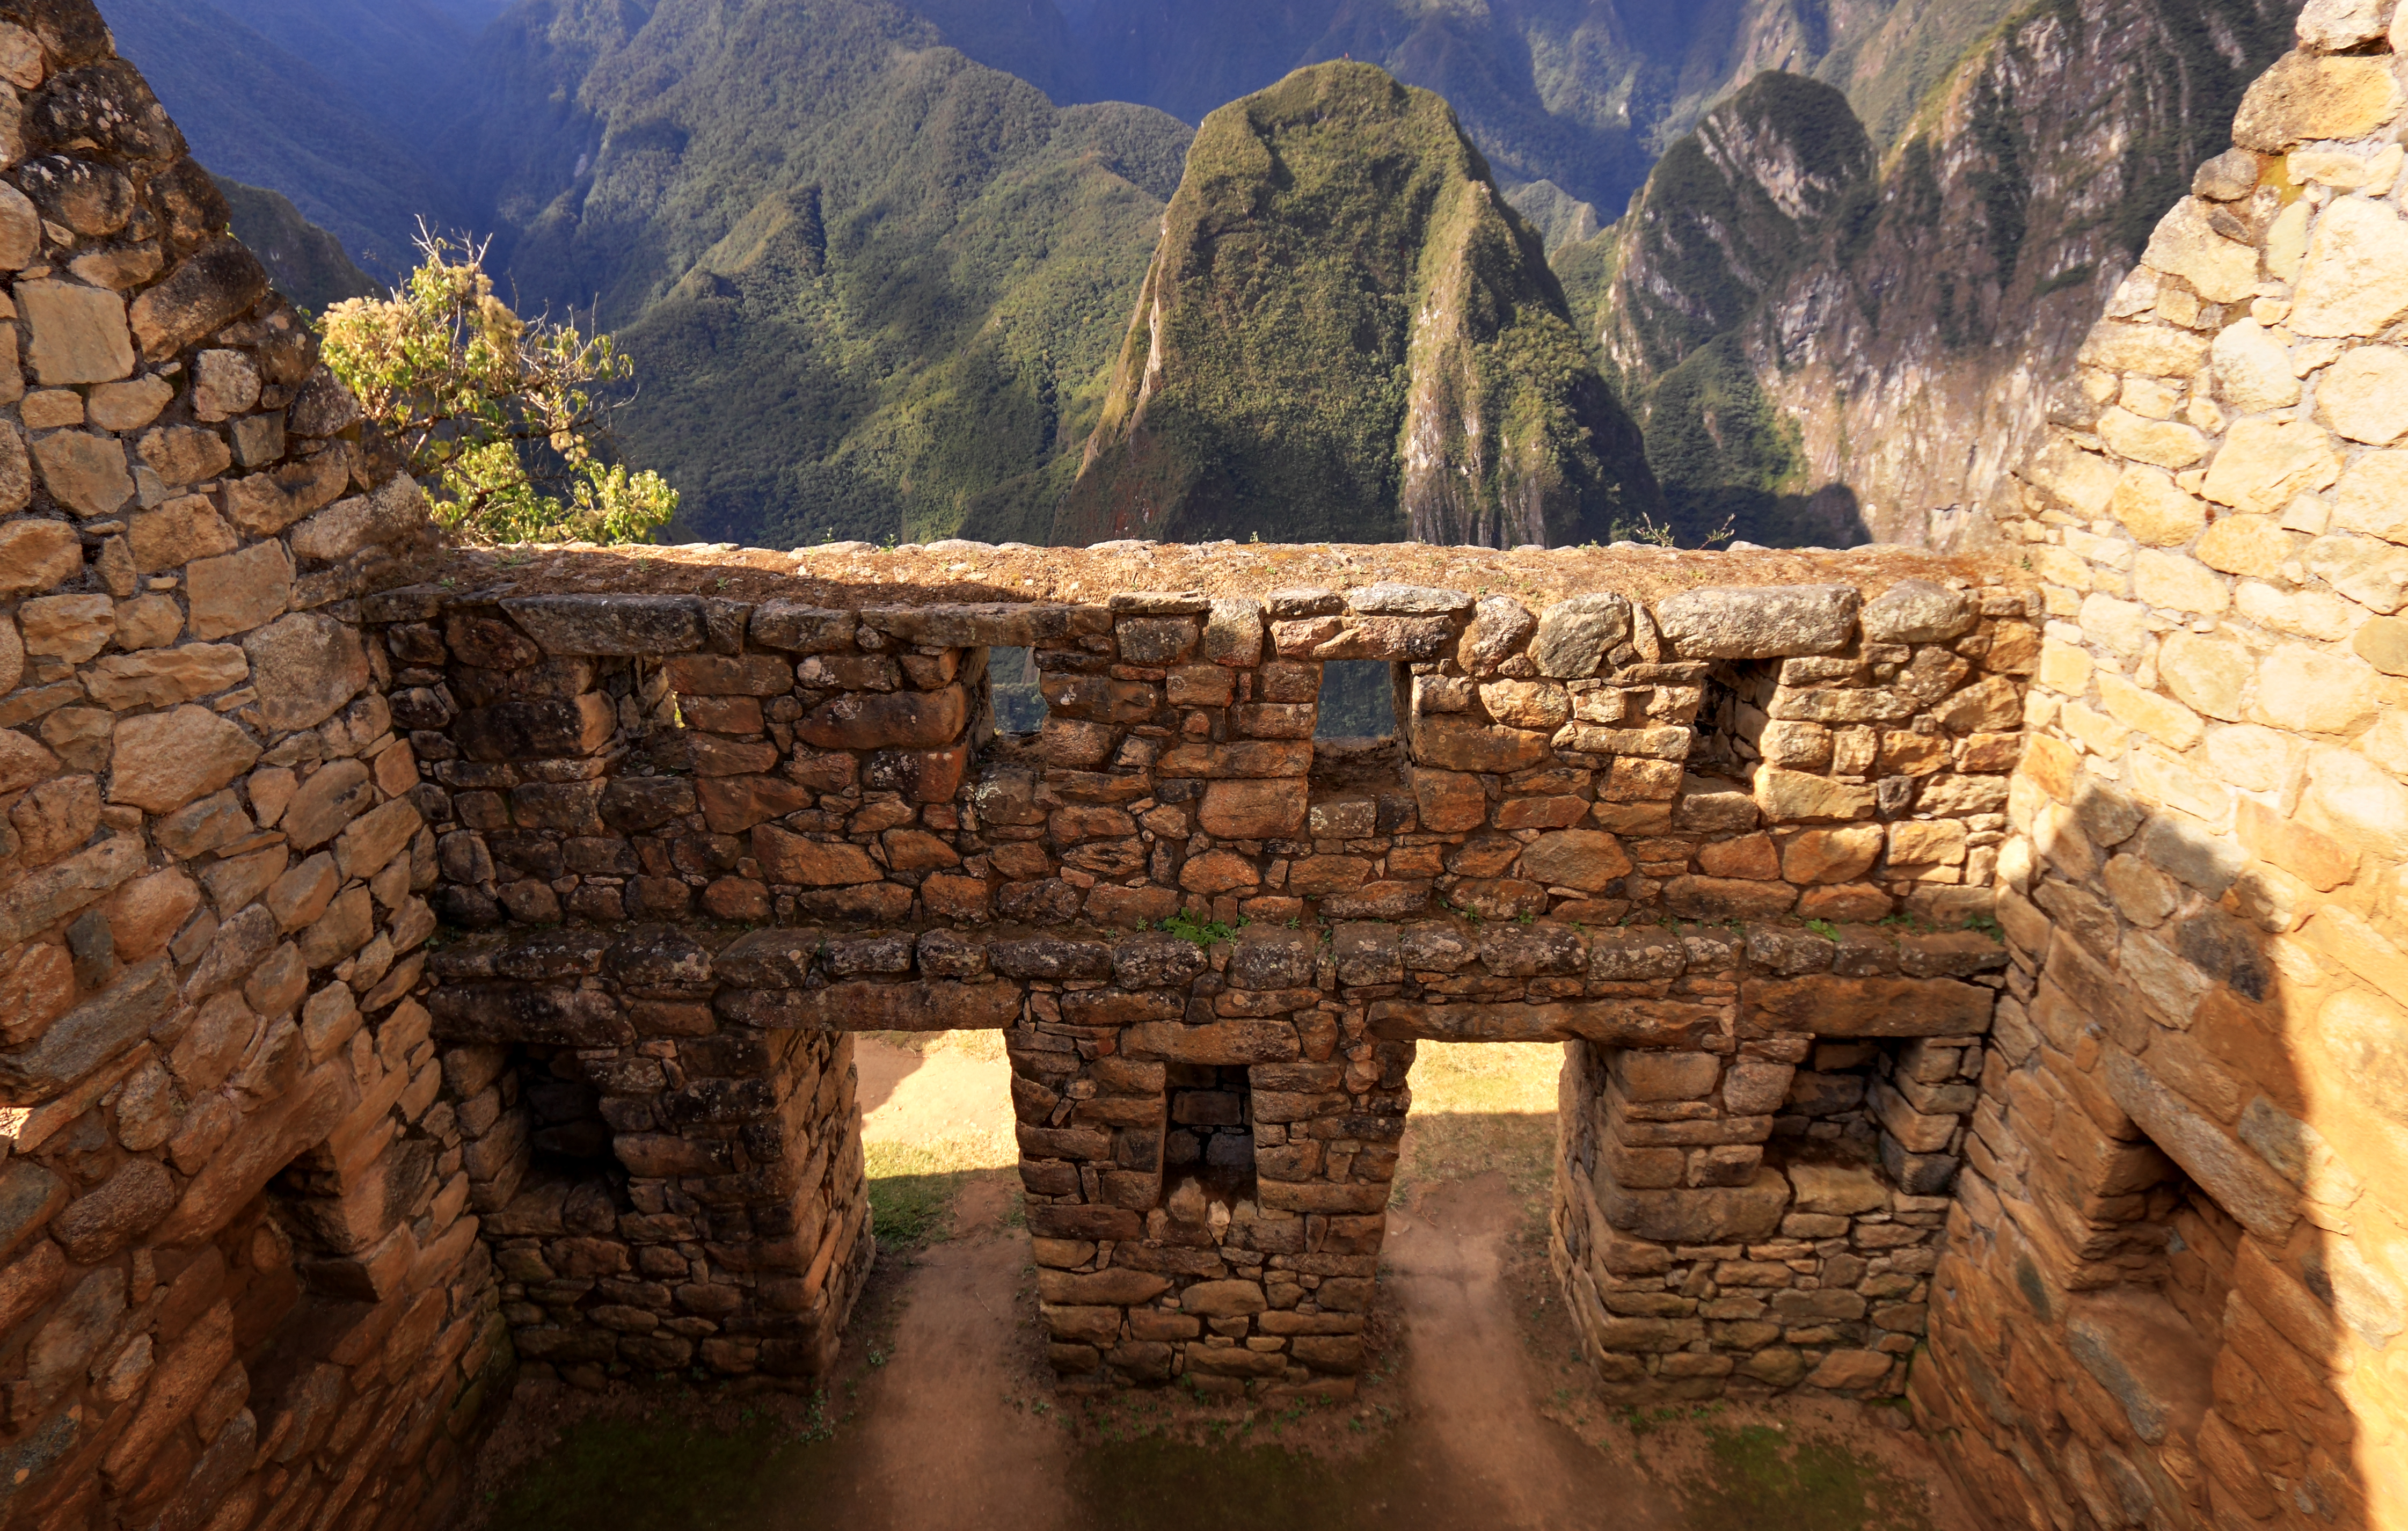 Lost Incan City of Machu Picchu: 100 Years after Discovery ...Inca Buildings And Structures